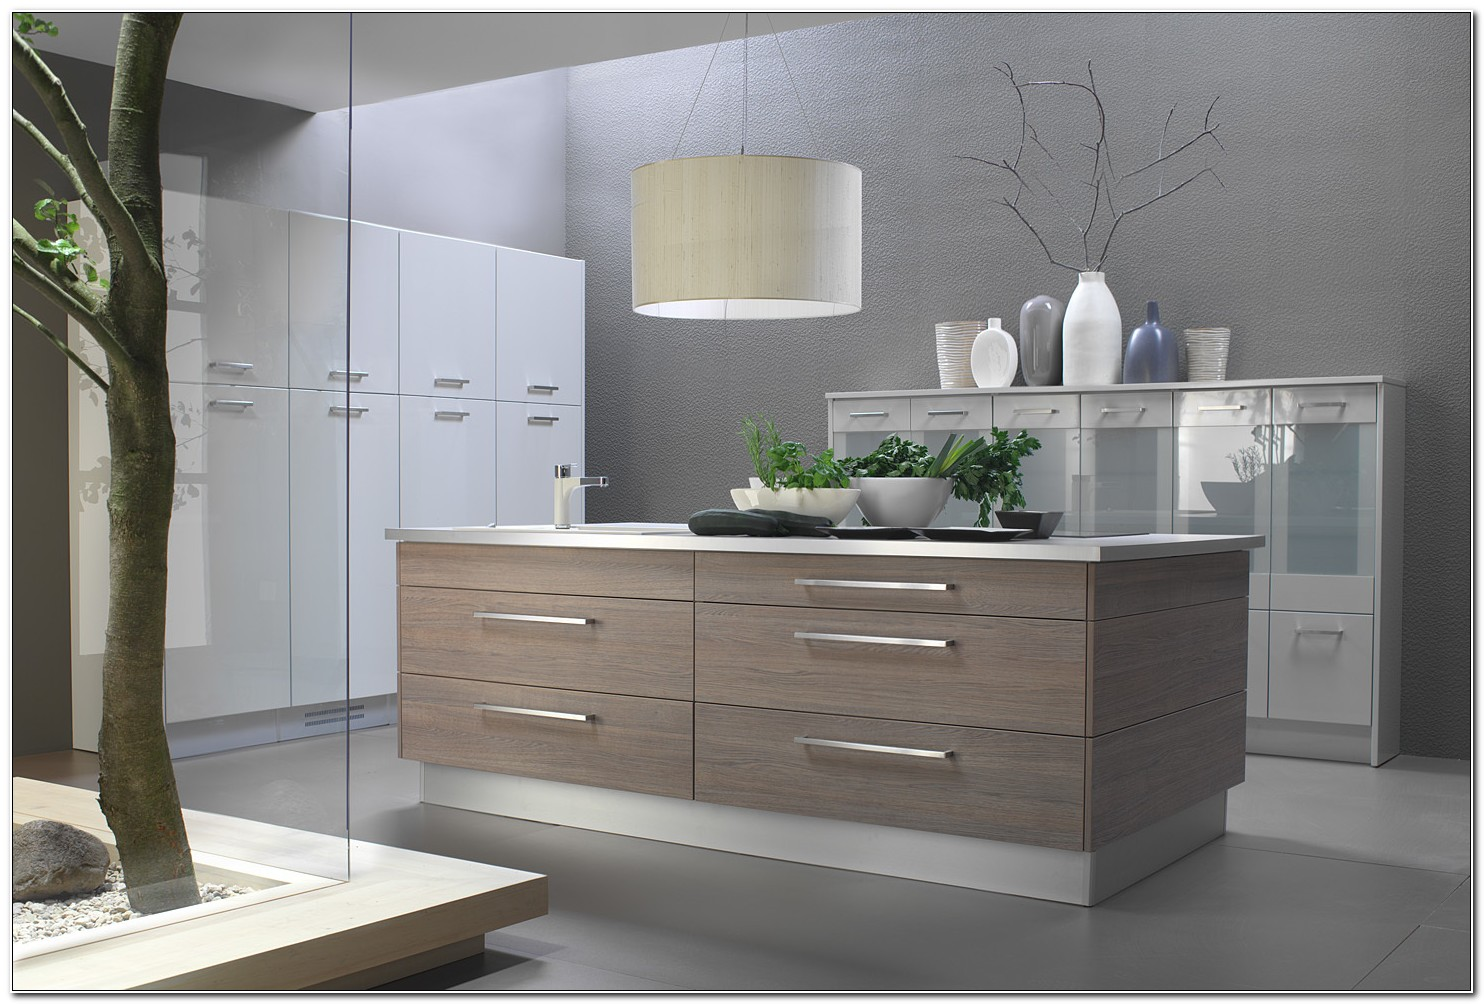 Formica Laminate Kitchen Cabinet Doors